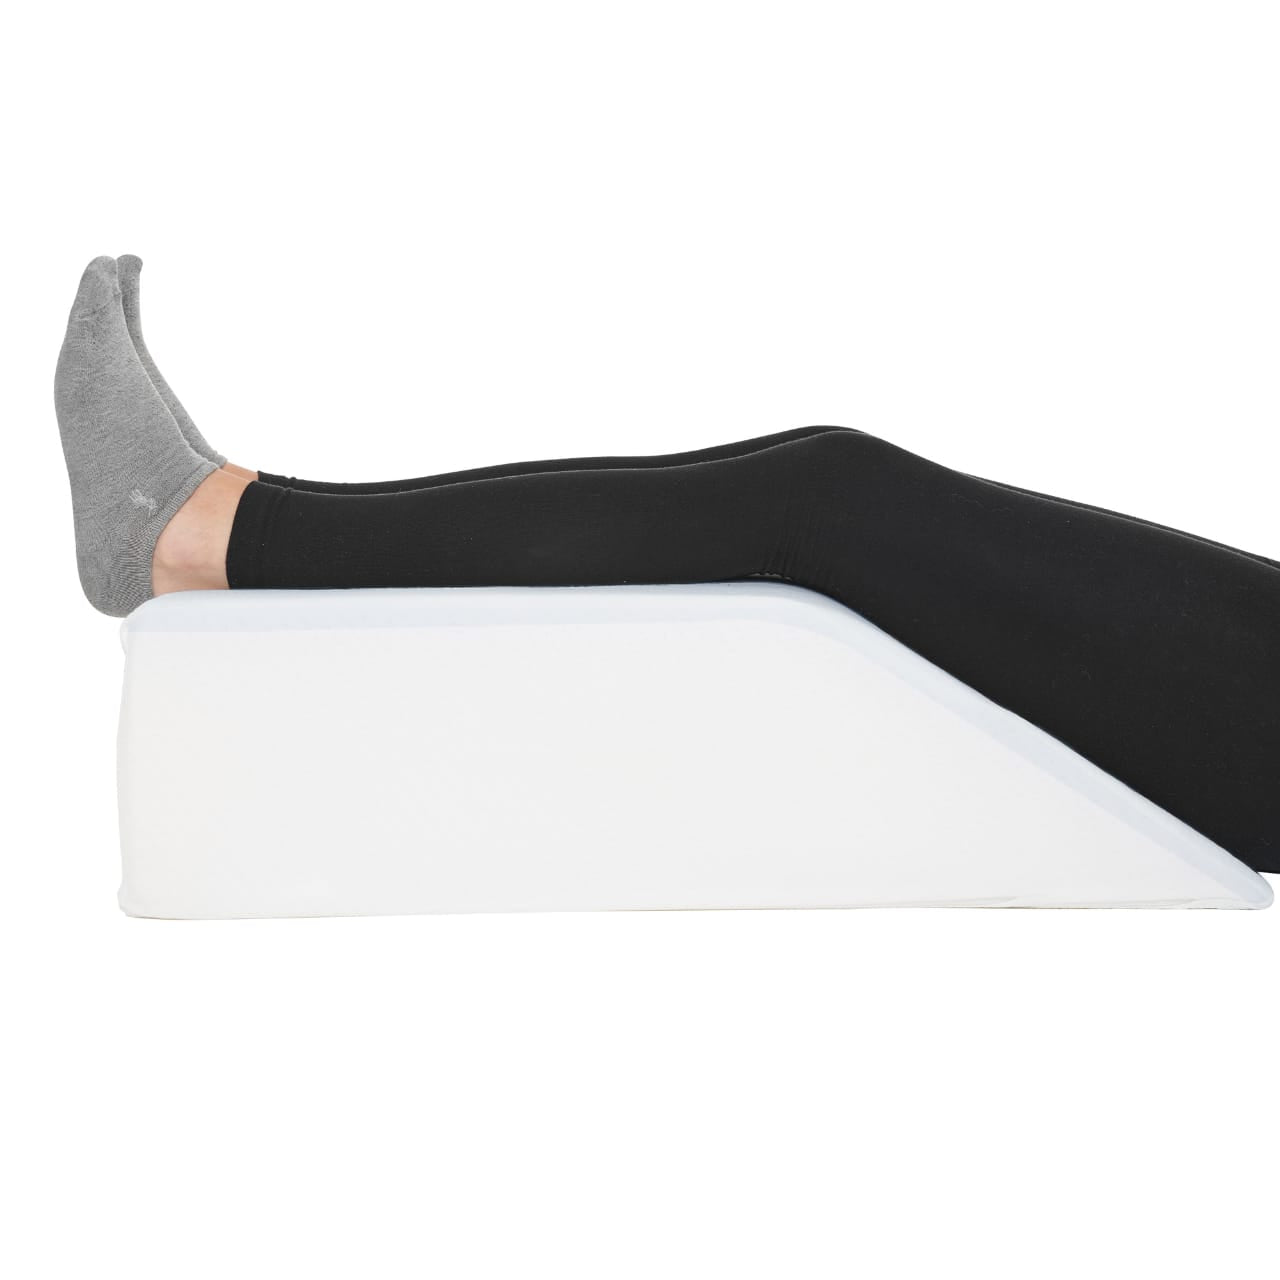 Leg Elevation Pillow - Full Cooling Gel Memory Foam Top, High-Density Leg Rest Elevating Foam Wedge- Relieves and Recovers Foot and Ankle Injury, Leg, Hip and Knee Pain, Improves Blood Circulation